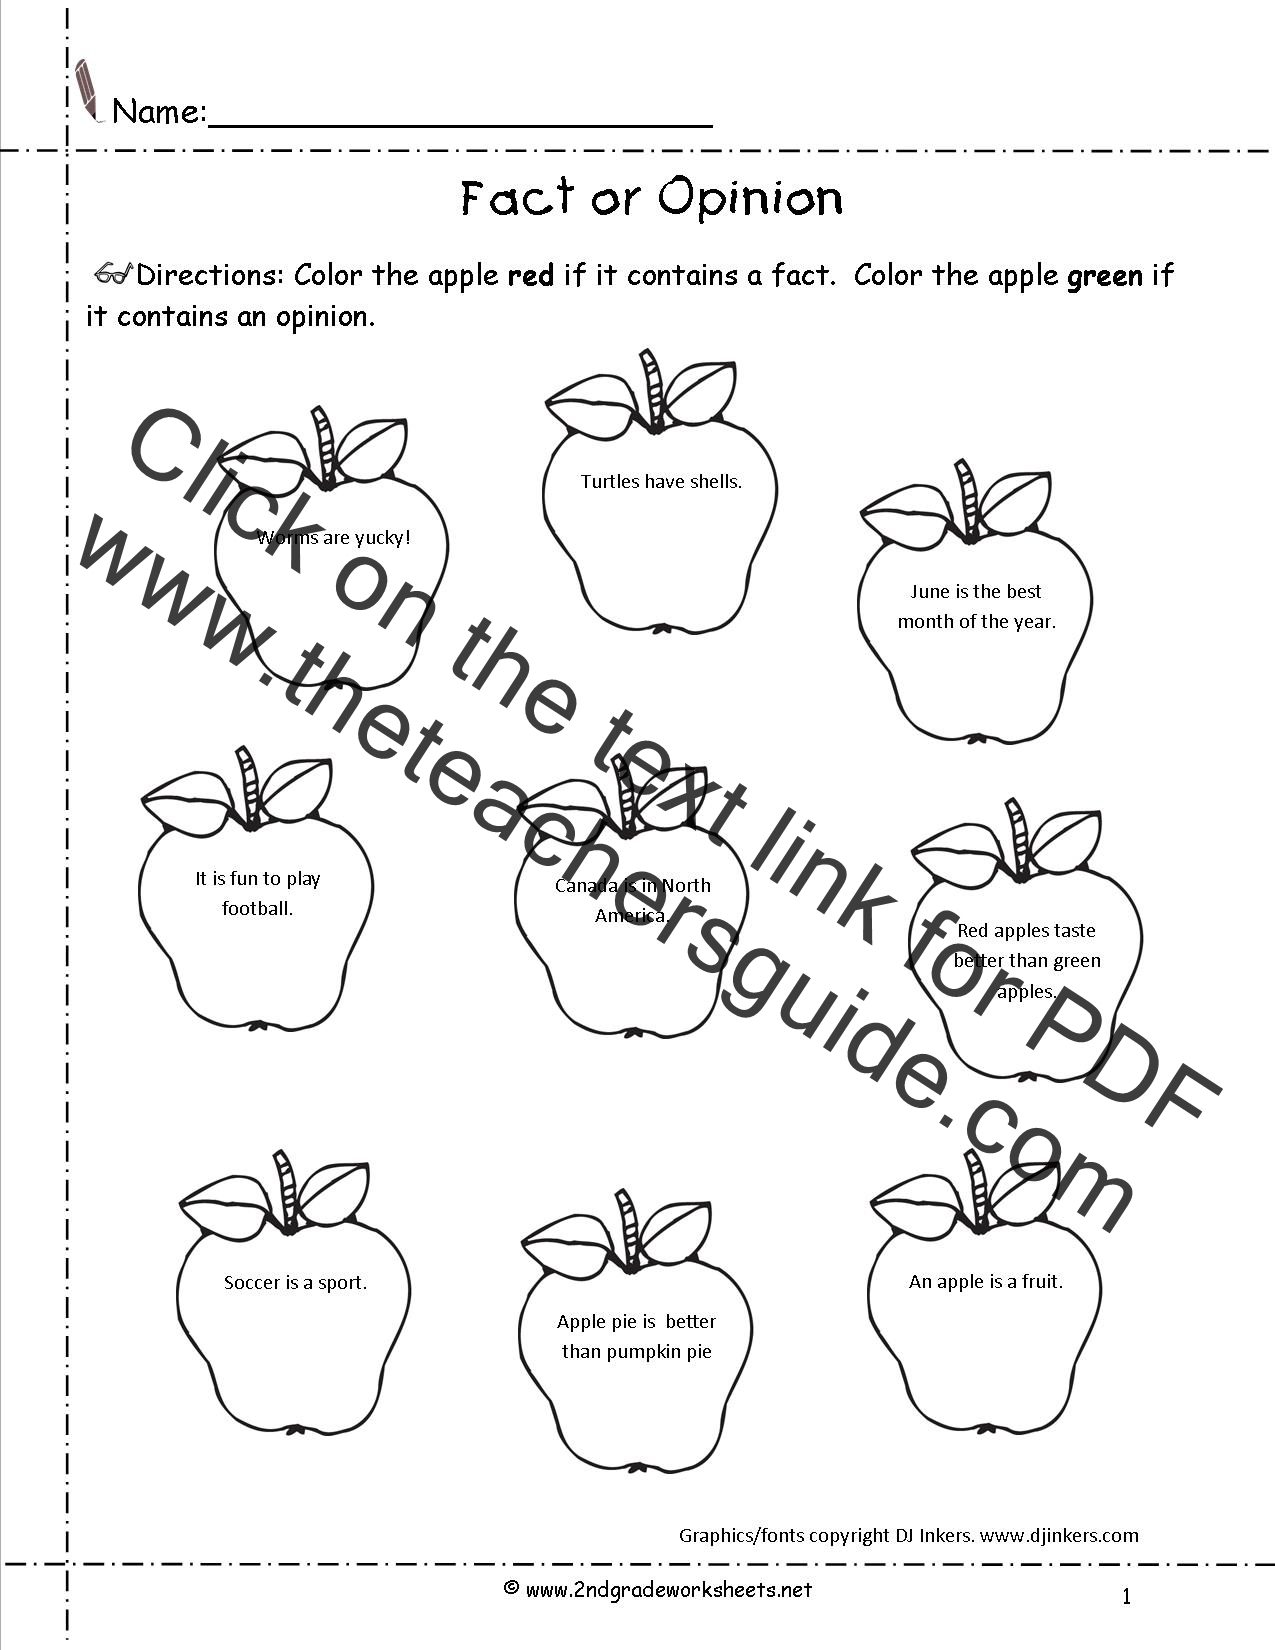 Worksheets Common Core Ela Worksheets ccss ela literacy w 2 1 worksheets fact or opinion worksheet common core